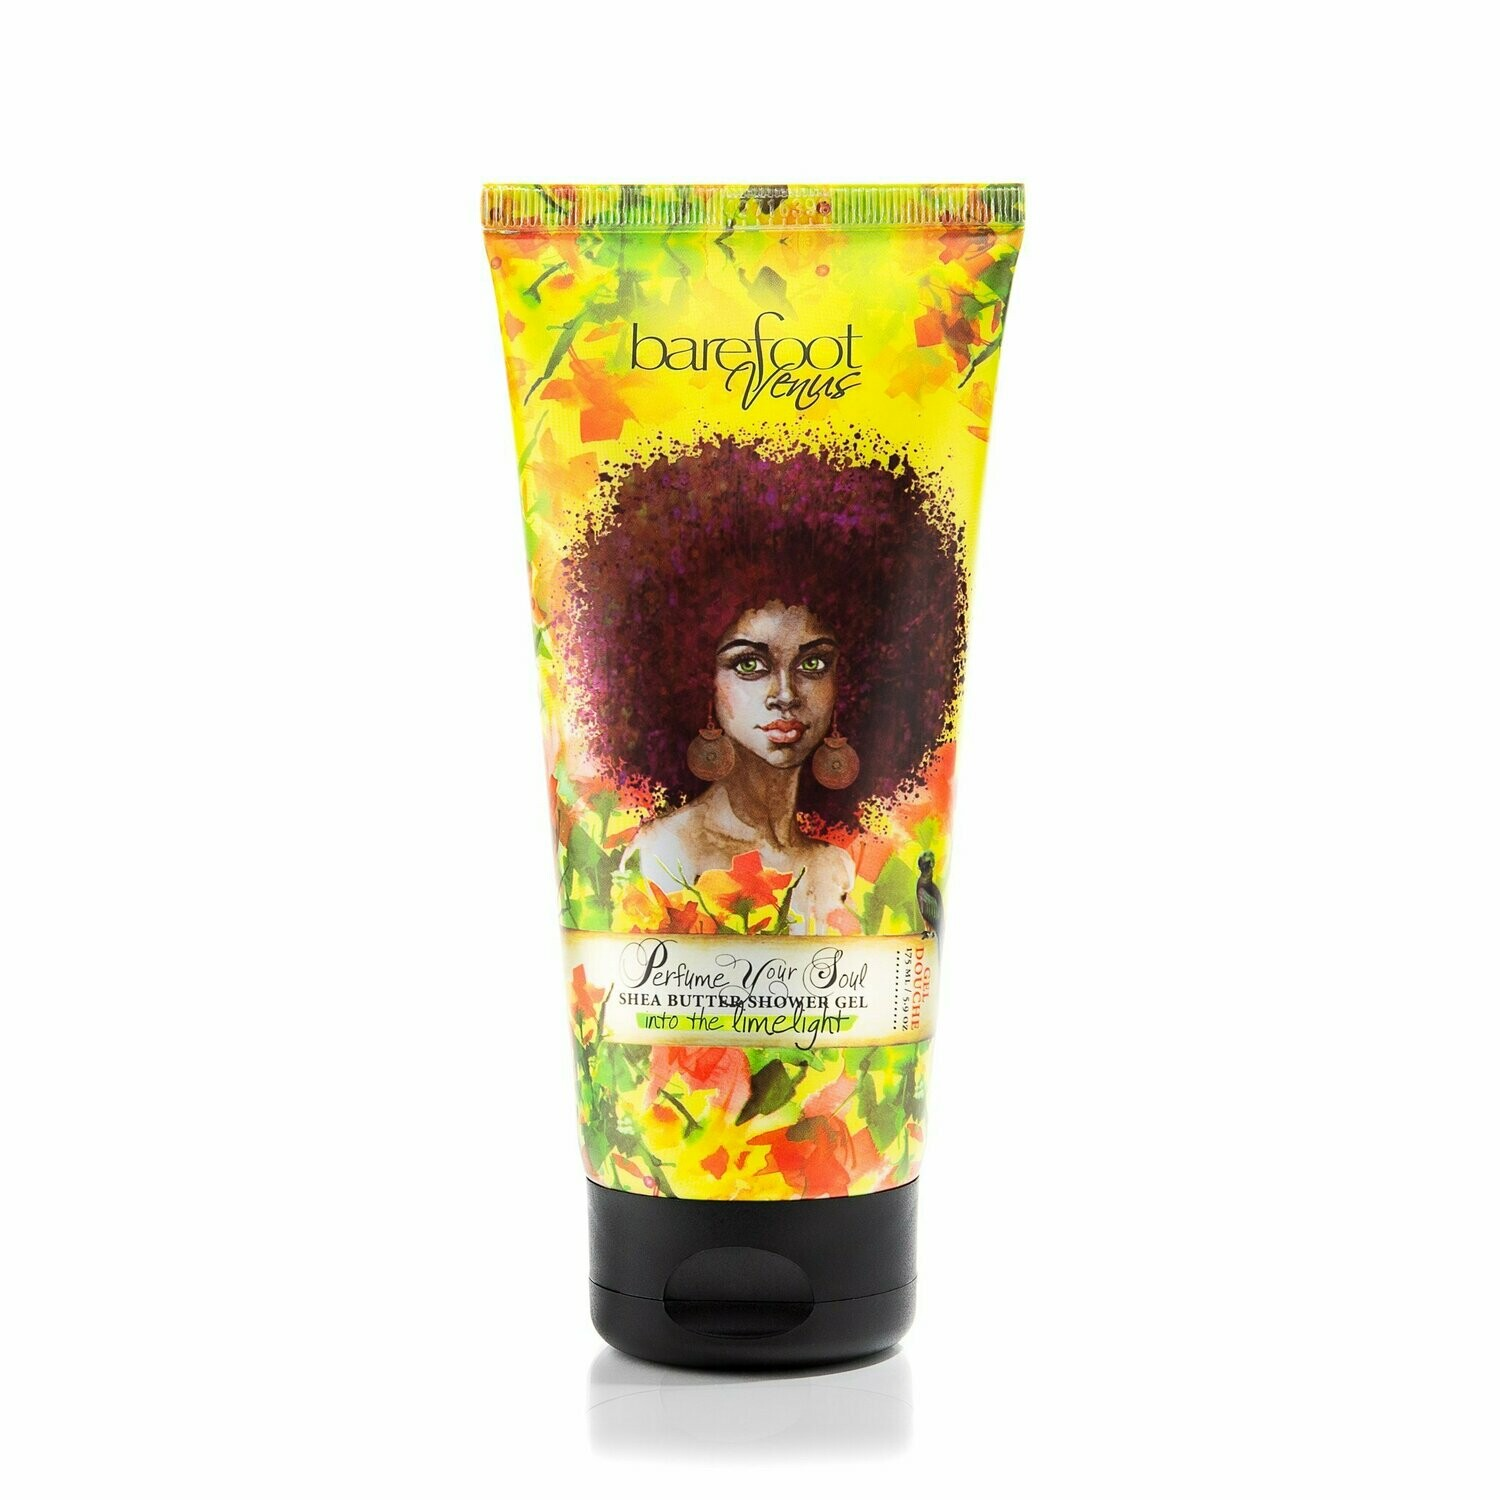 Into The Limelight Shea Butter Shower